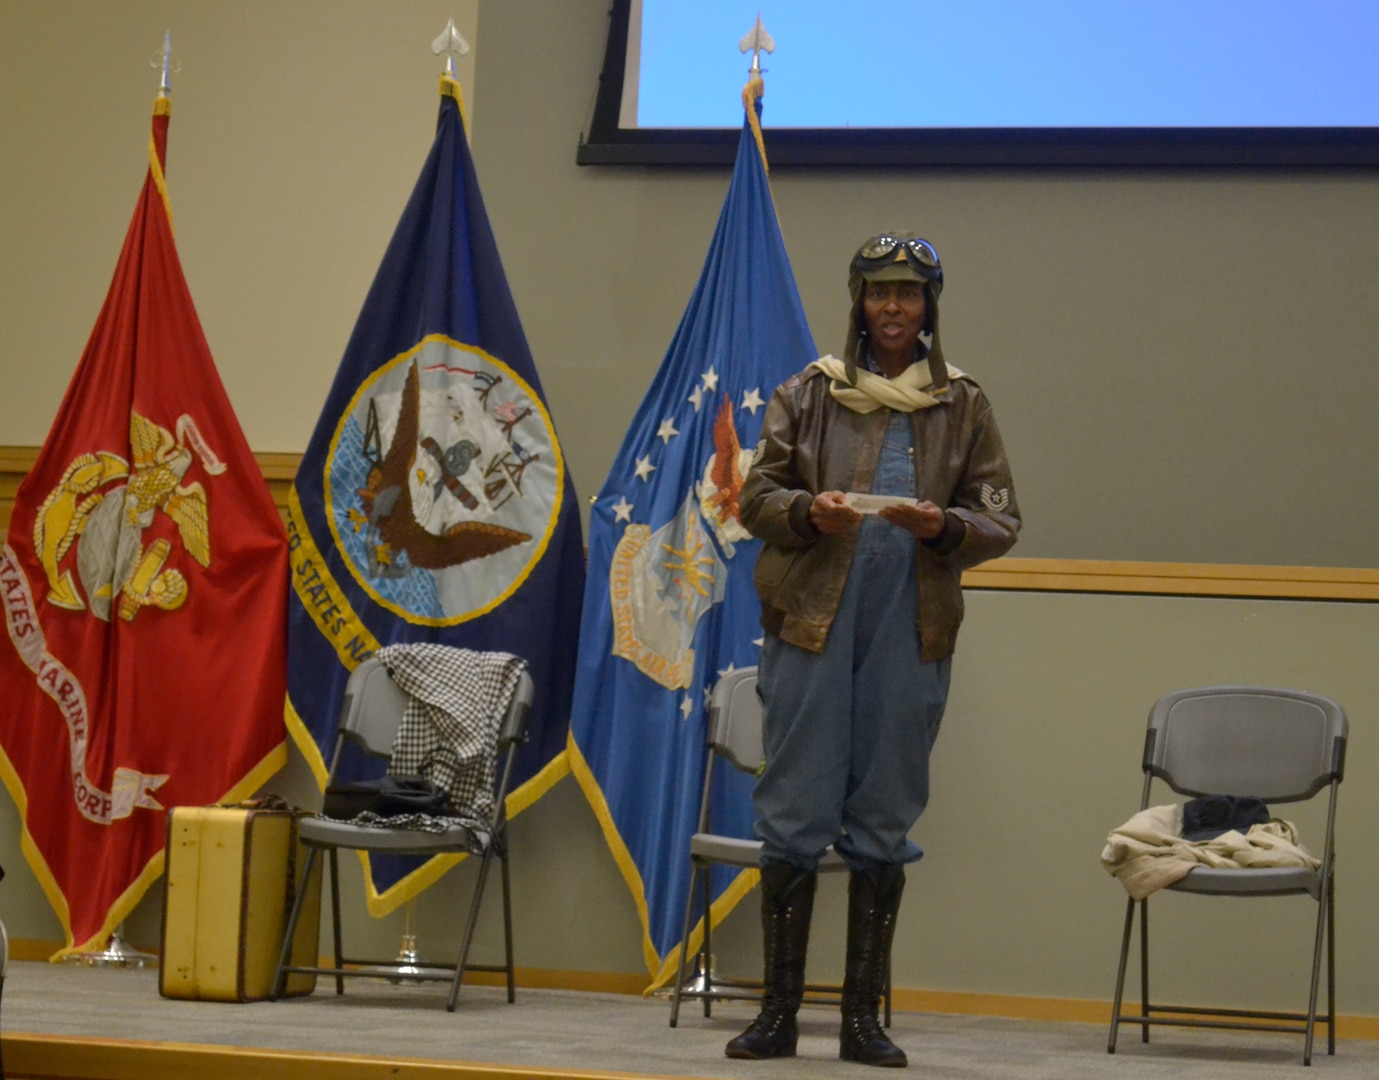 In observance of Women's Equality Day, employees from across the Naval Support Activity Philadelphia gathered on August 28 in the Defense Logistics Agency Troop Support auditorium to learn about the history of an African American woman who overcame many barriers to become a professional pilot.